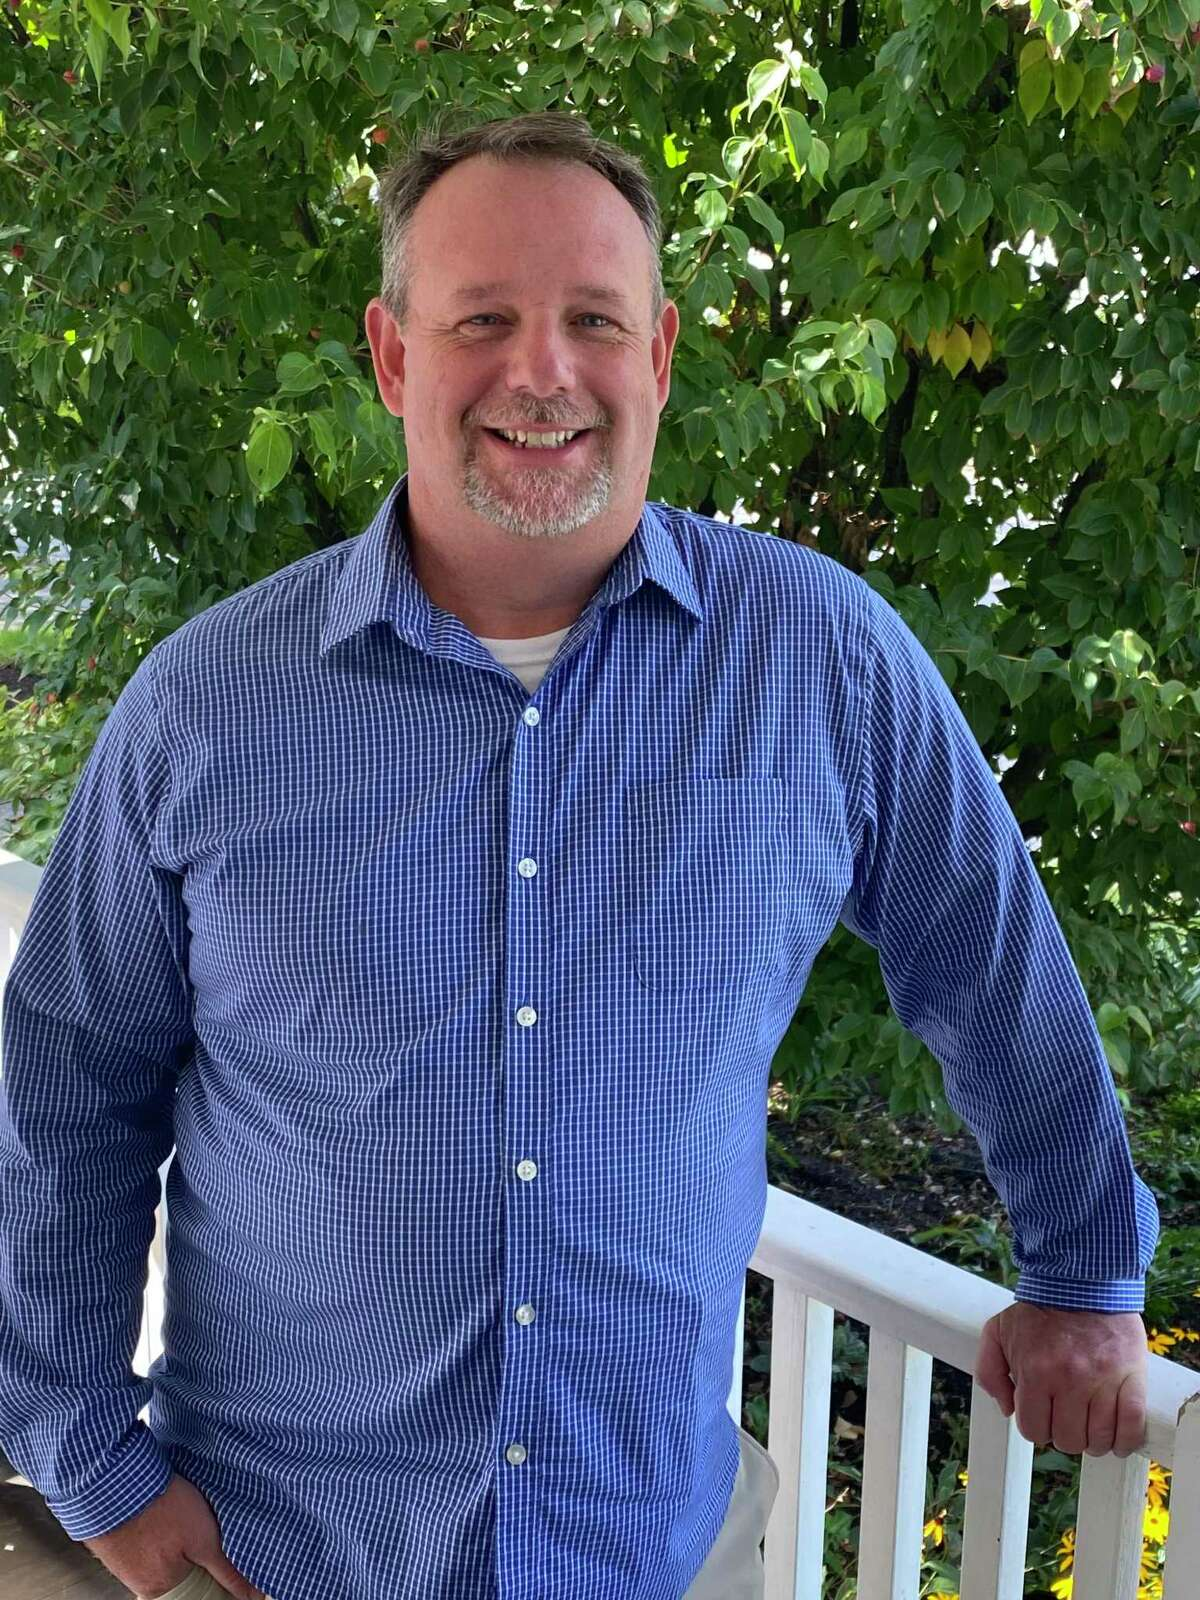 Bob Reiling of New Milford founded and is president of the Ostomy Awareness Foundation, Inc.